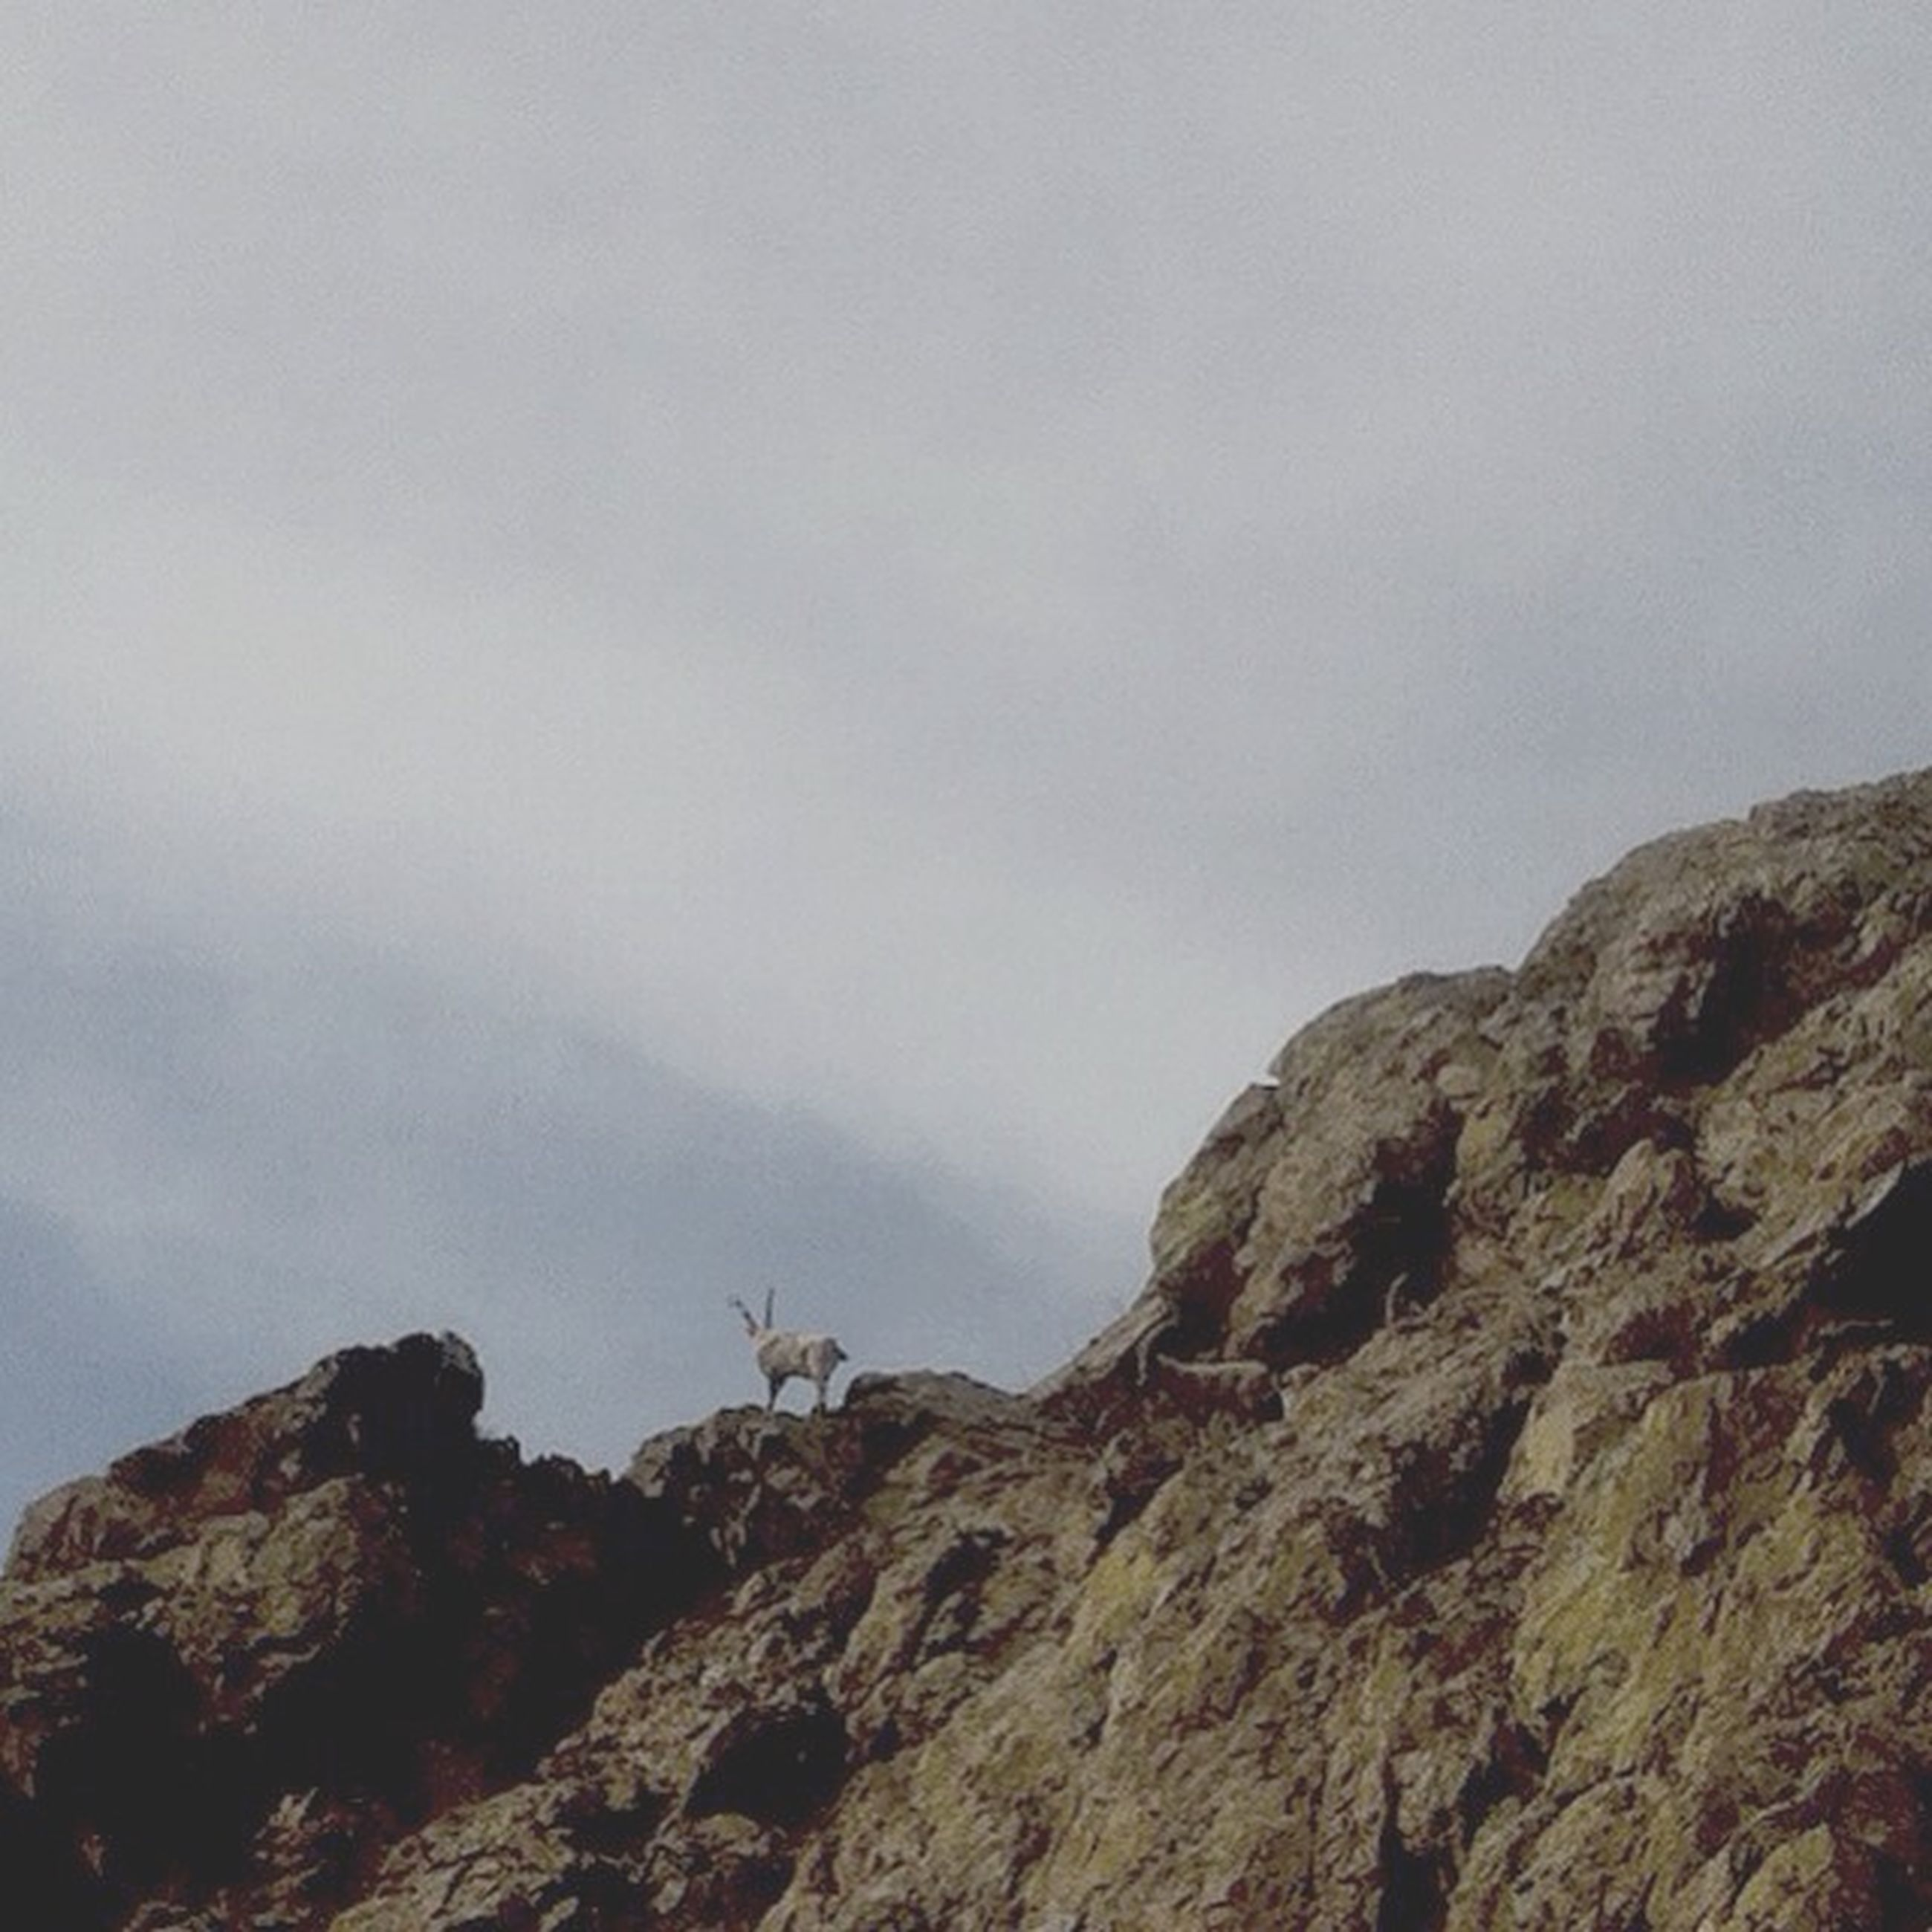 rock - object, sky, low angle view, tranquility, rock formation, mountain, nature, tranquil scene, scenics, beauty in nature, rock, rough, rocky mountains, day, outdoors, rocky, cloud - sky, geology, cliff, idyllic